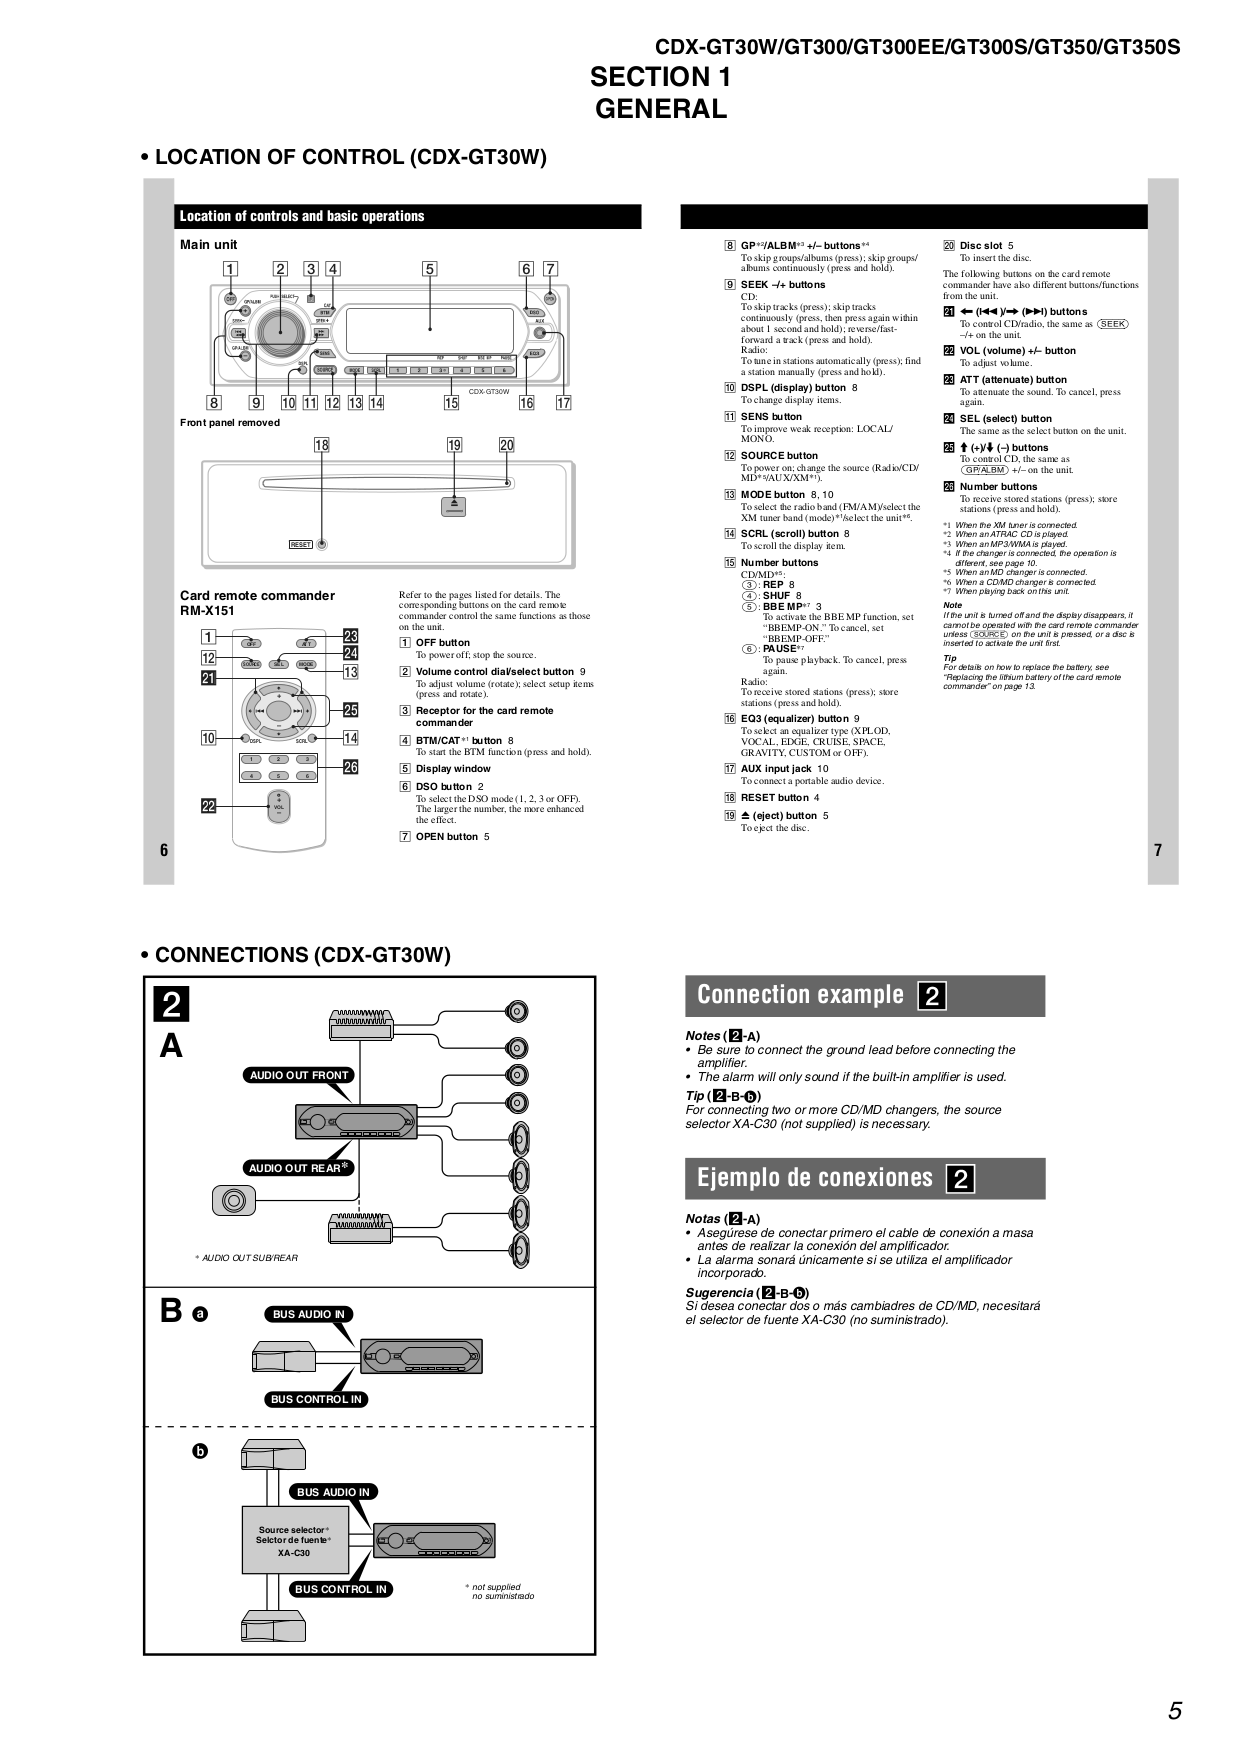 CDX GT350S.pdf 4?resize=665%2C941 sony cdx gt500 wiring diagram sony car stereo wiring adapter sony cdx gt300 wiring diagram at gsmx.co